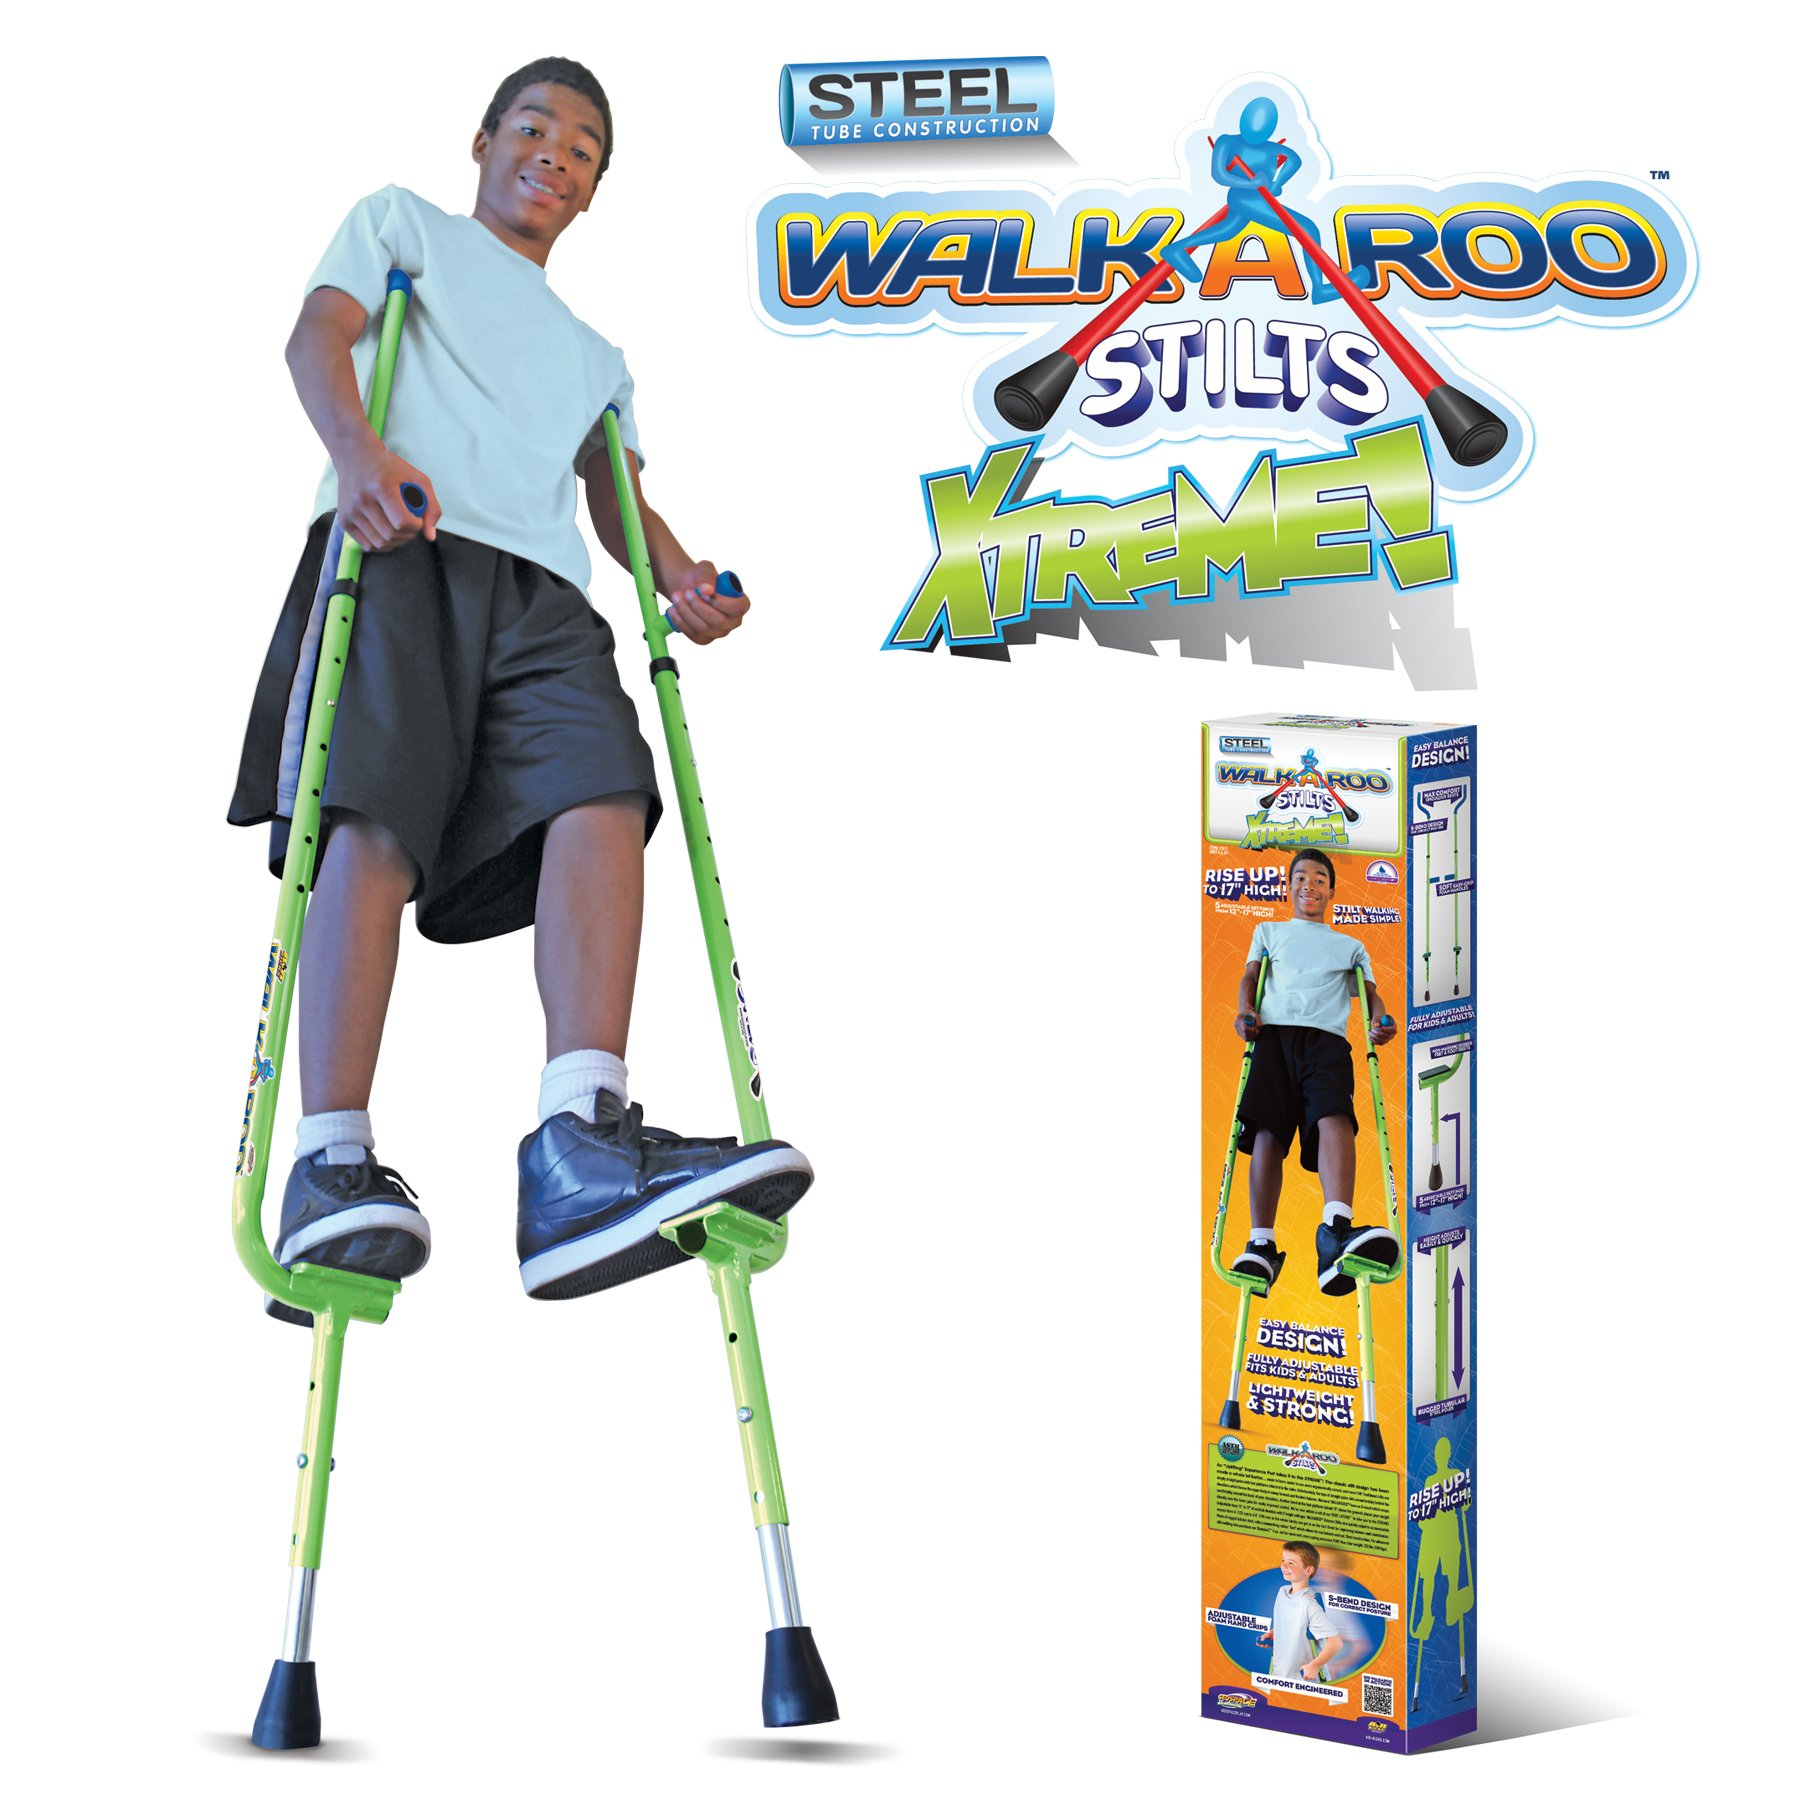 WALKAROO XTREME Steel Balance Stilts with Height Adjustable Vert Lifters by Air Kicks